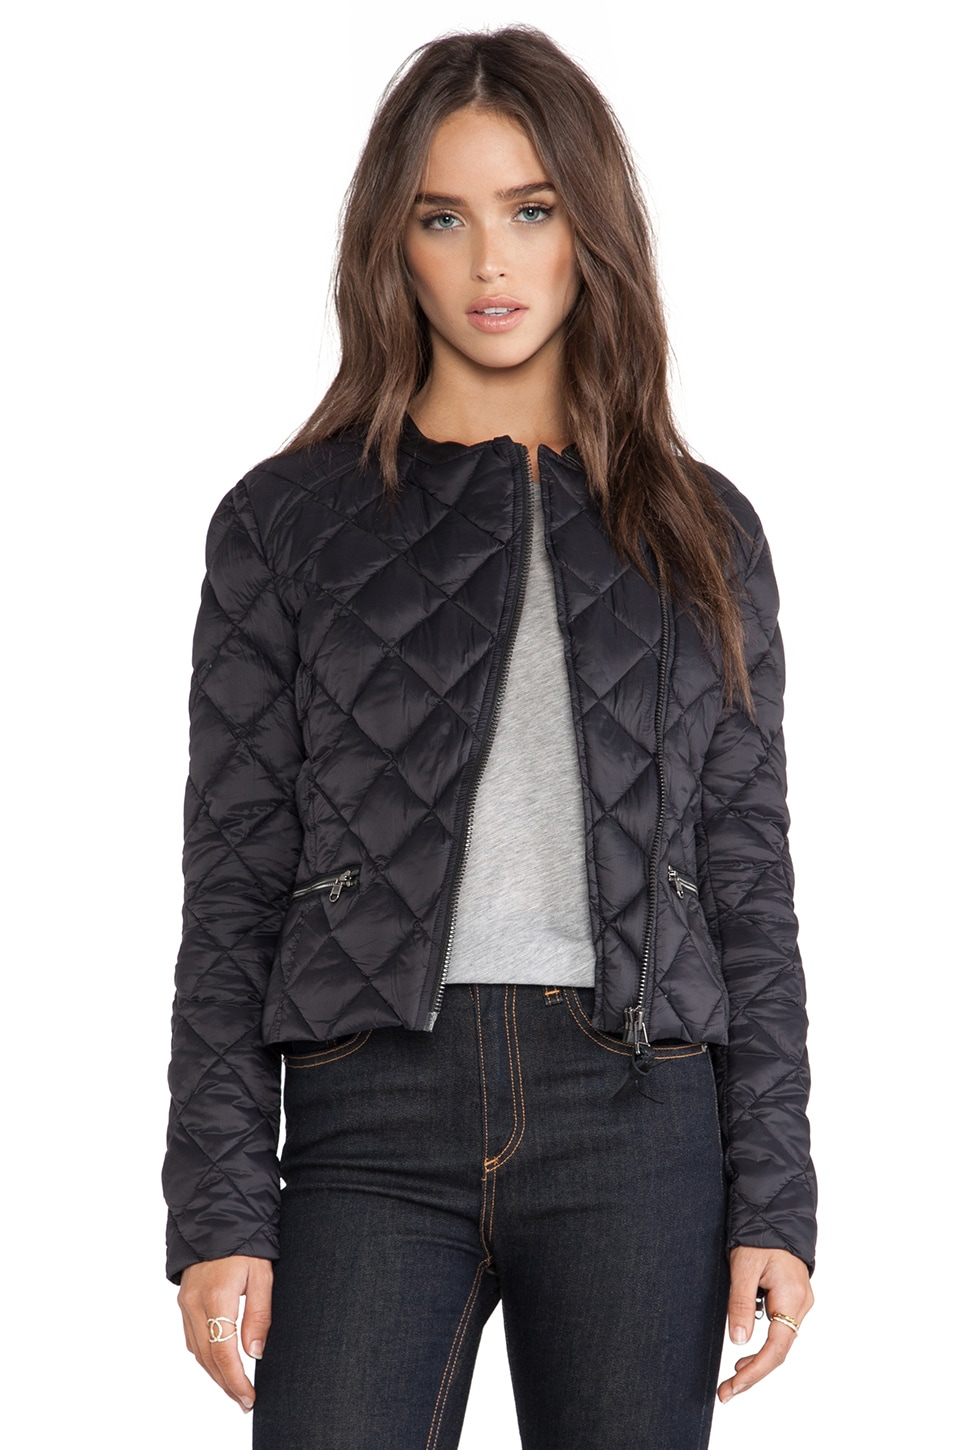 Mackage Zadie Jacket in Black